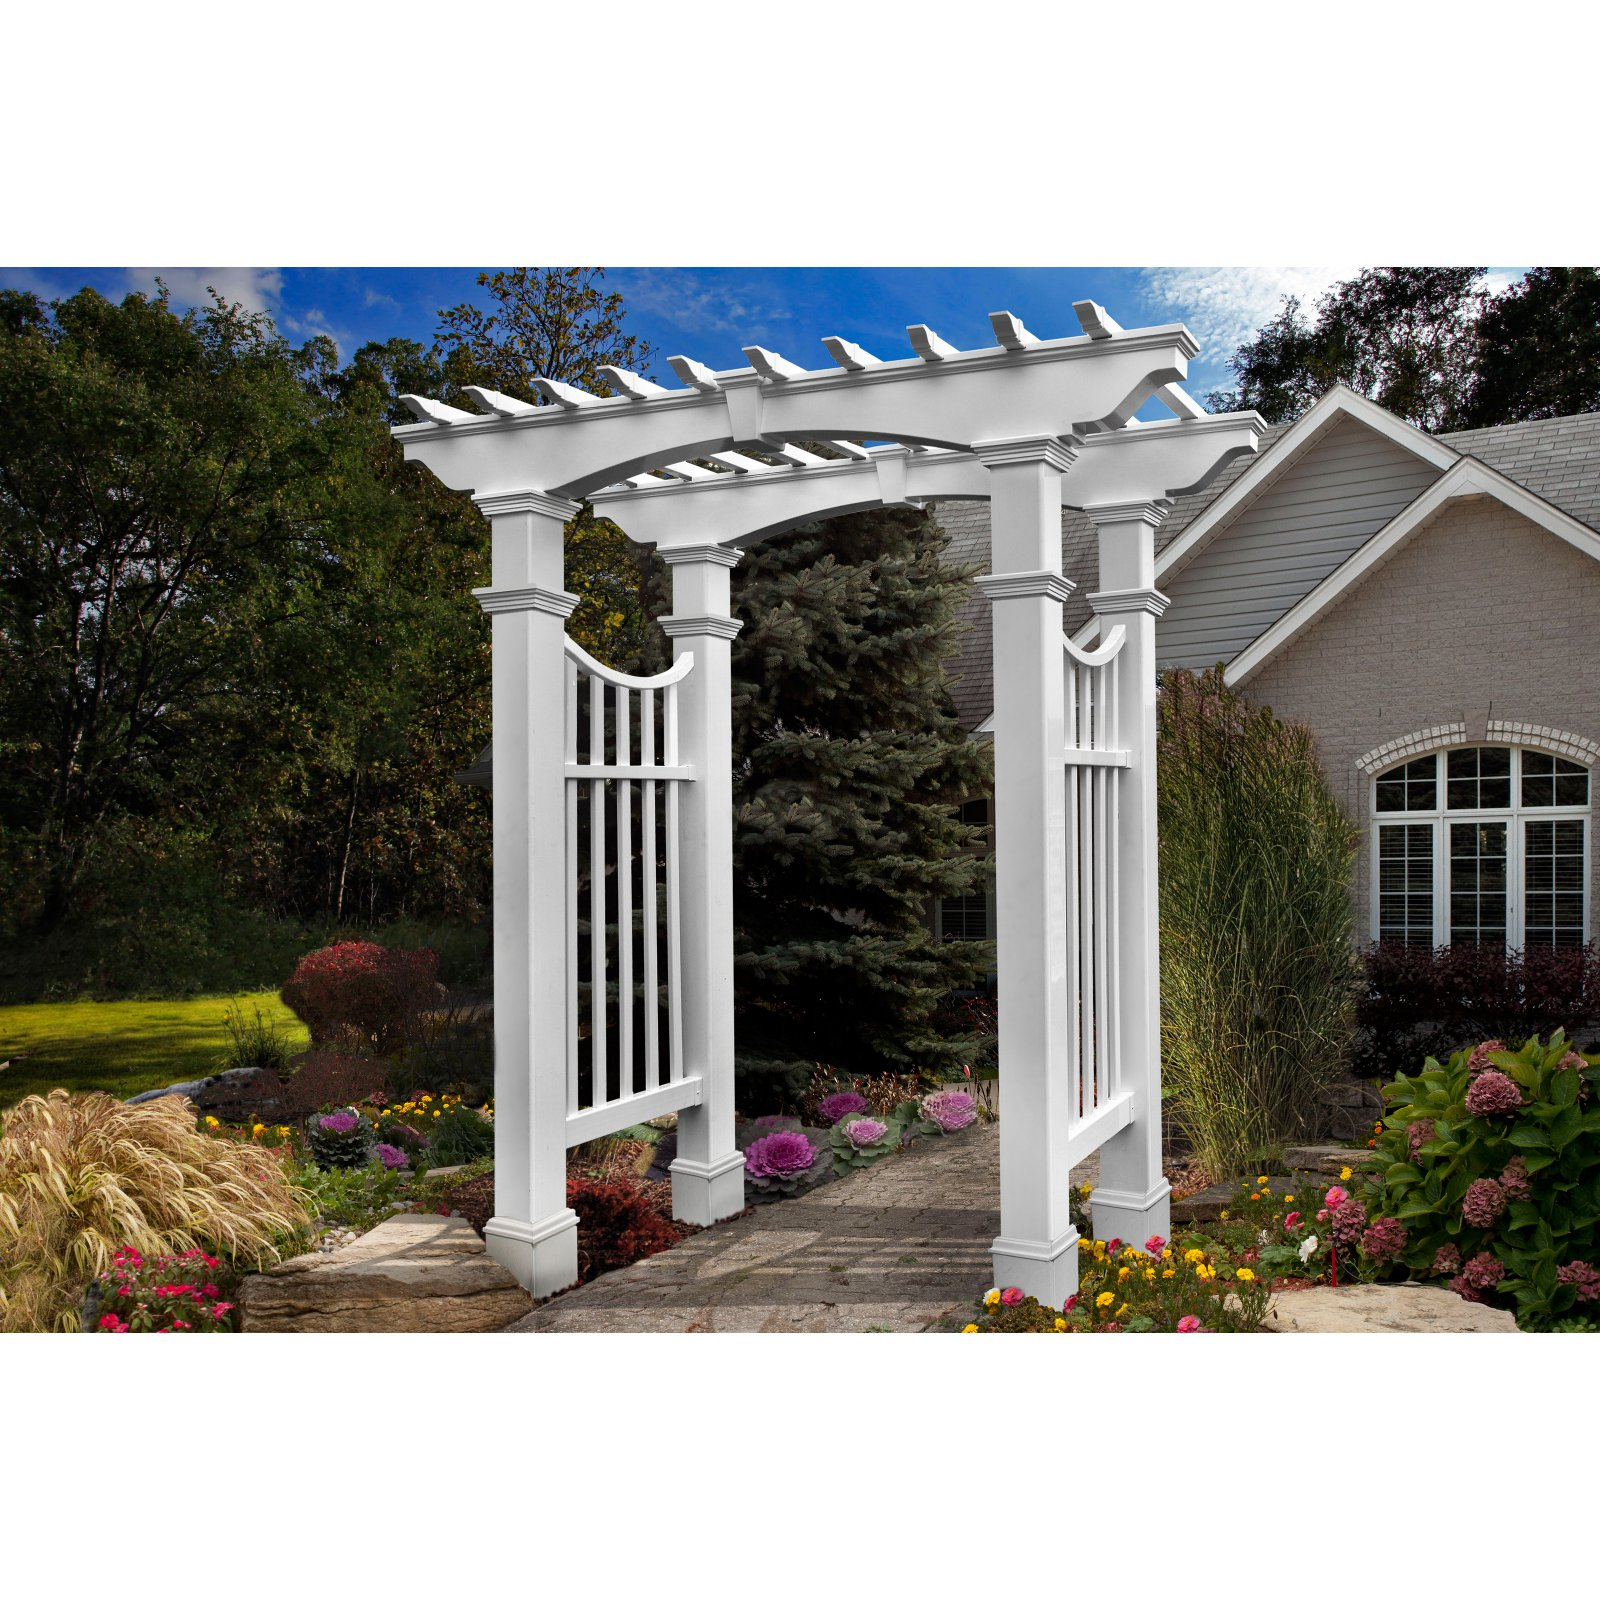 New England Arbors Devonshire 8-ft. Arbor with Trim Kit by New England Arbors